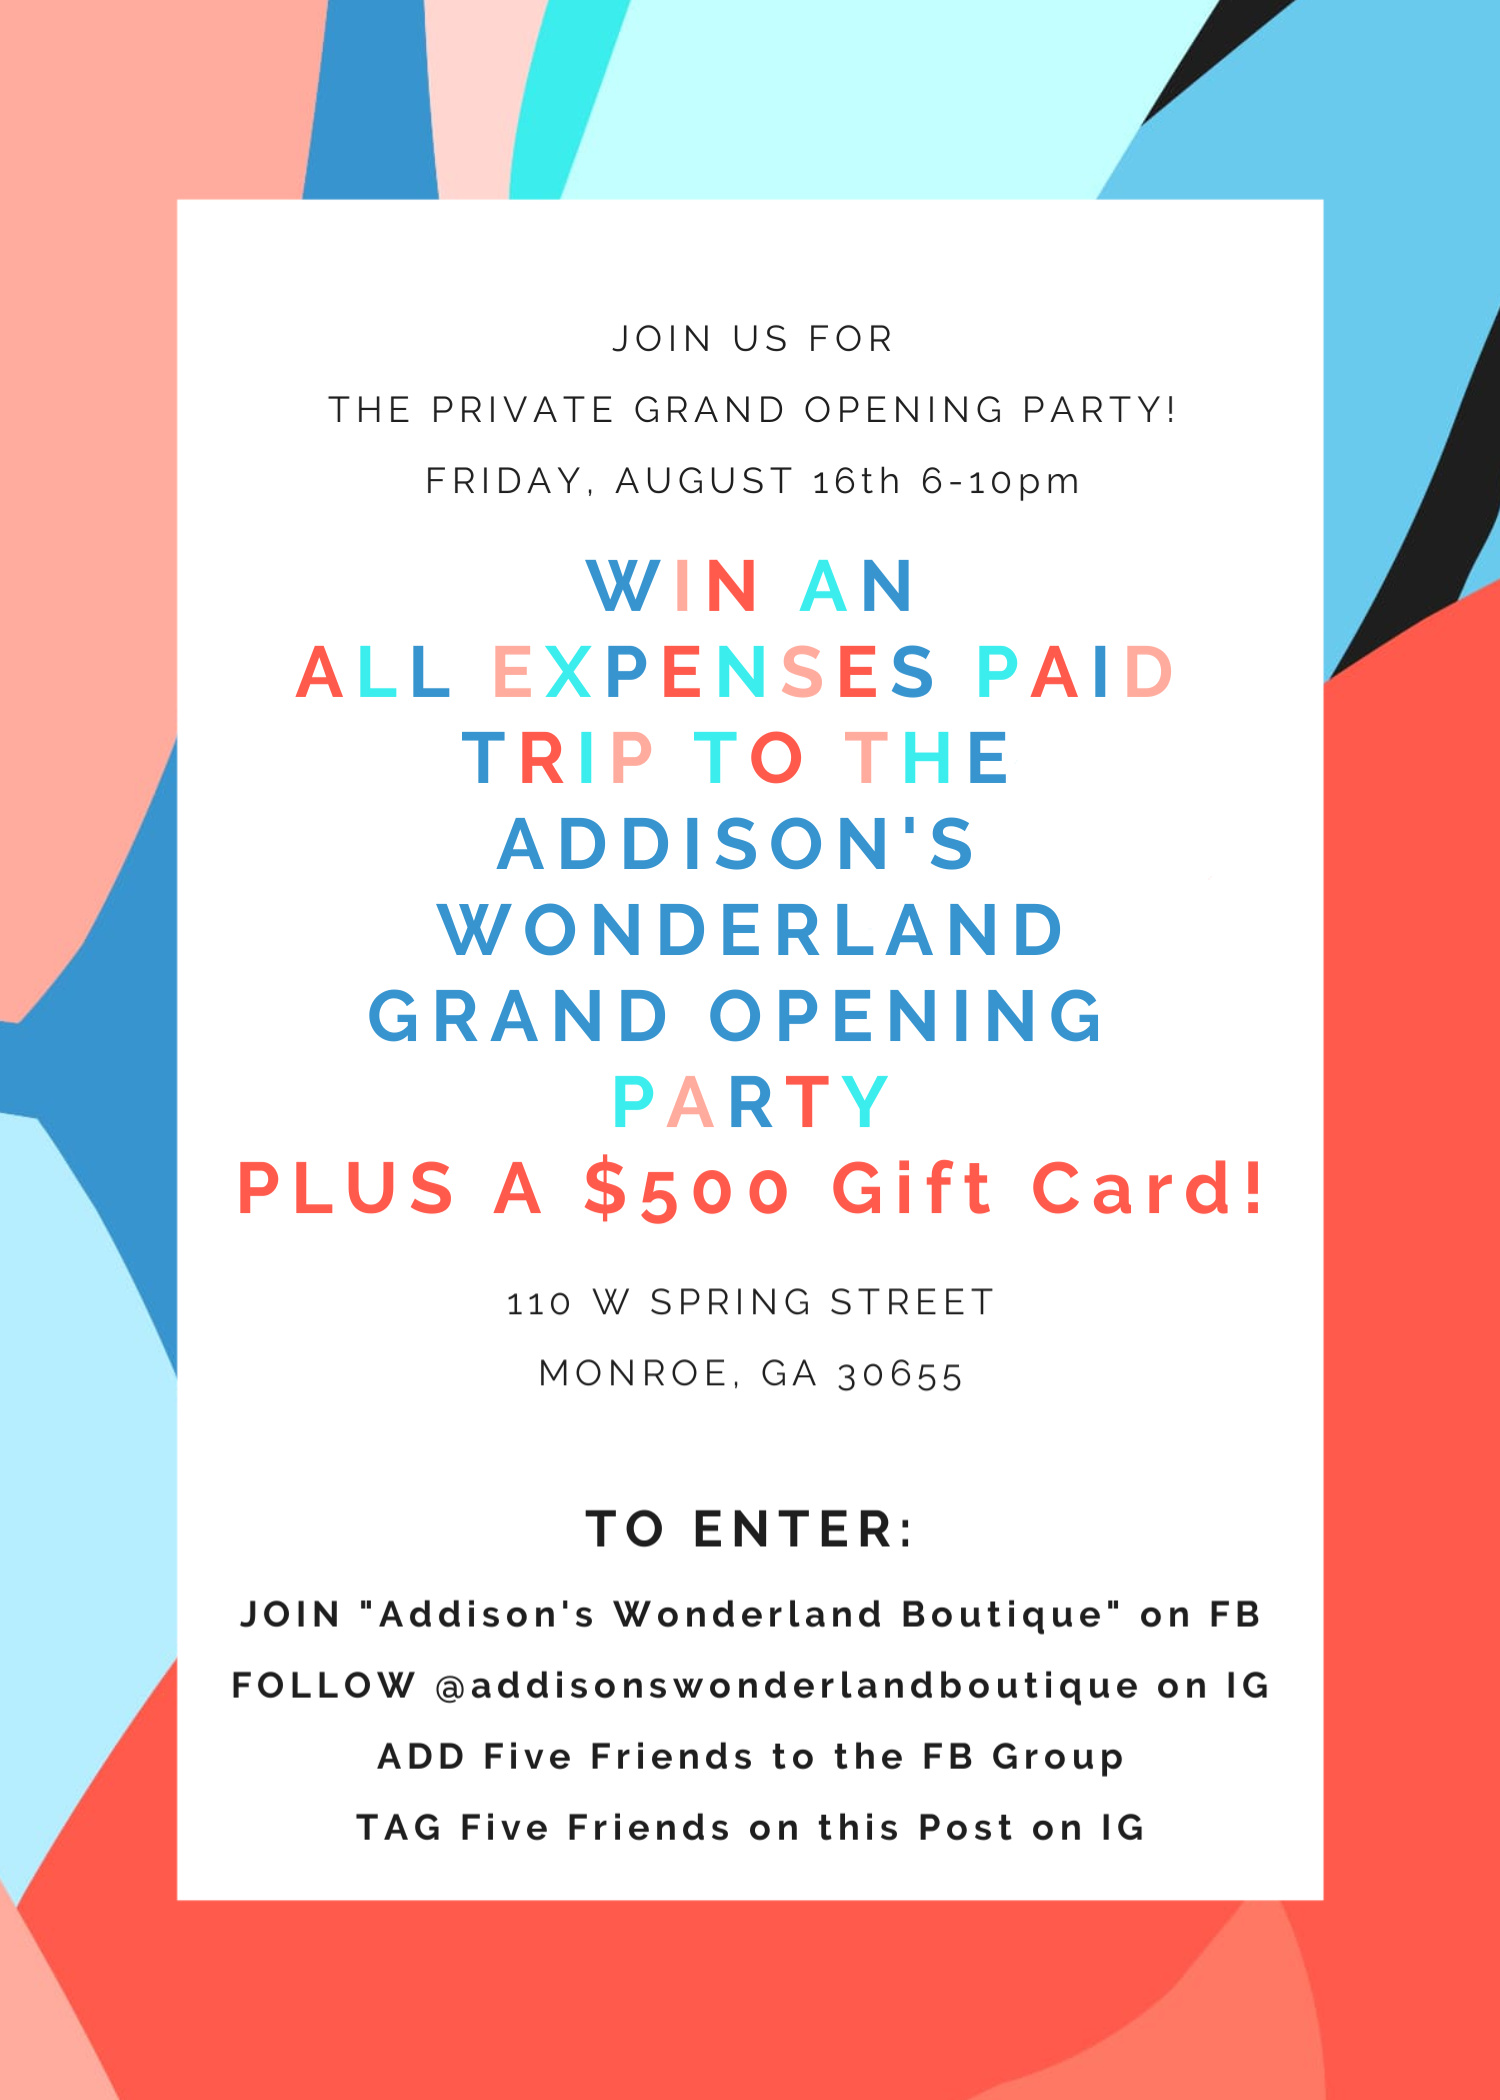 Win An All Expenses Paid Trip to the AW Grand Opening!